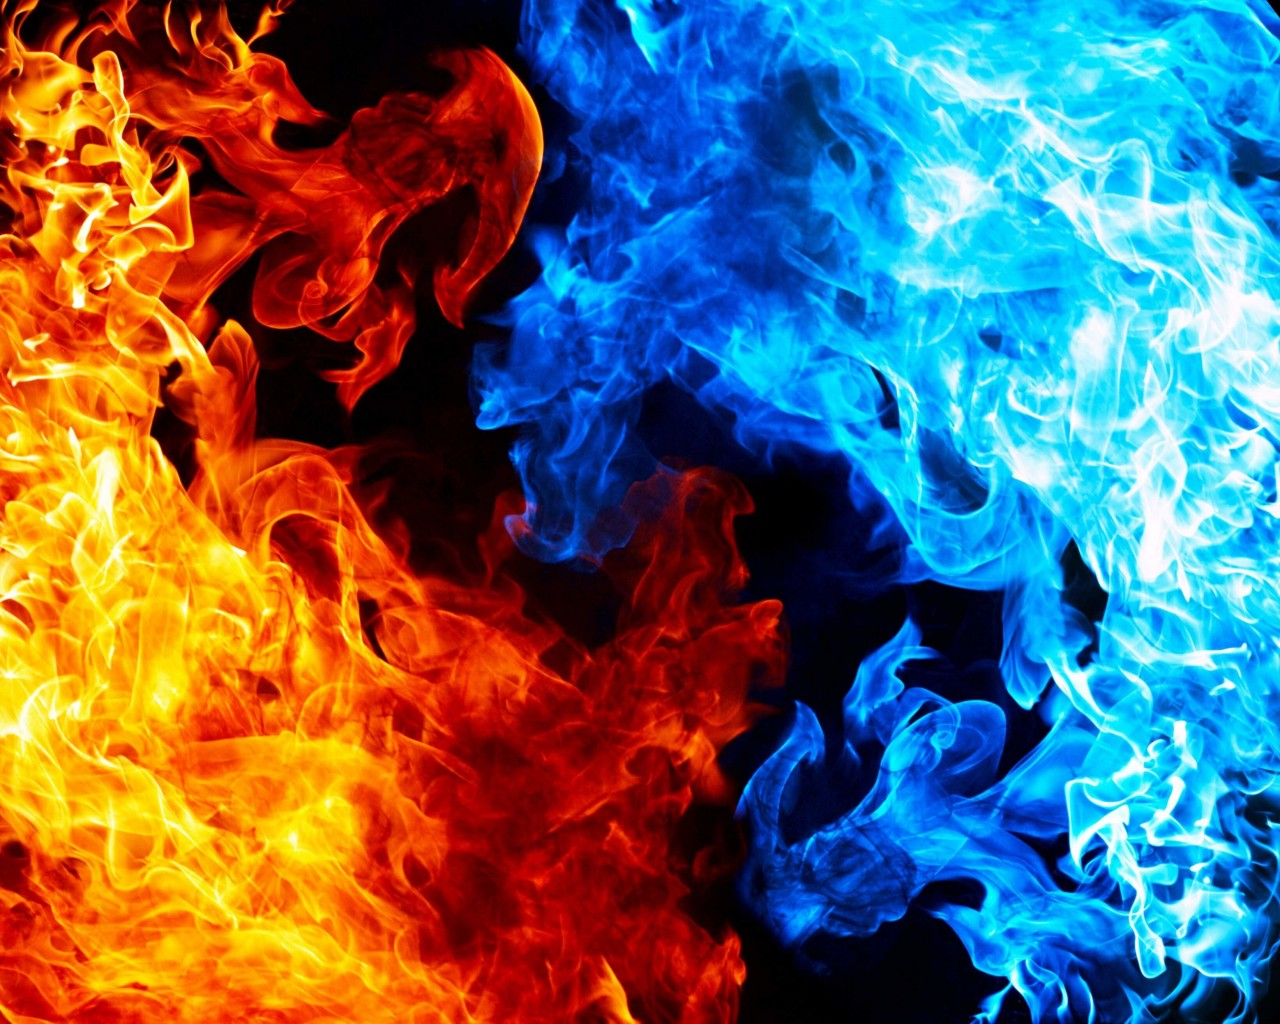 Blue And Red Fire Wallpaper for Desktop 1280x1024